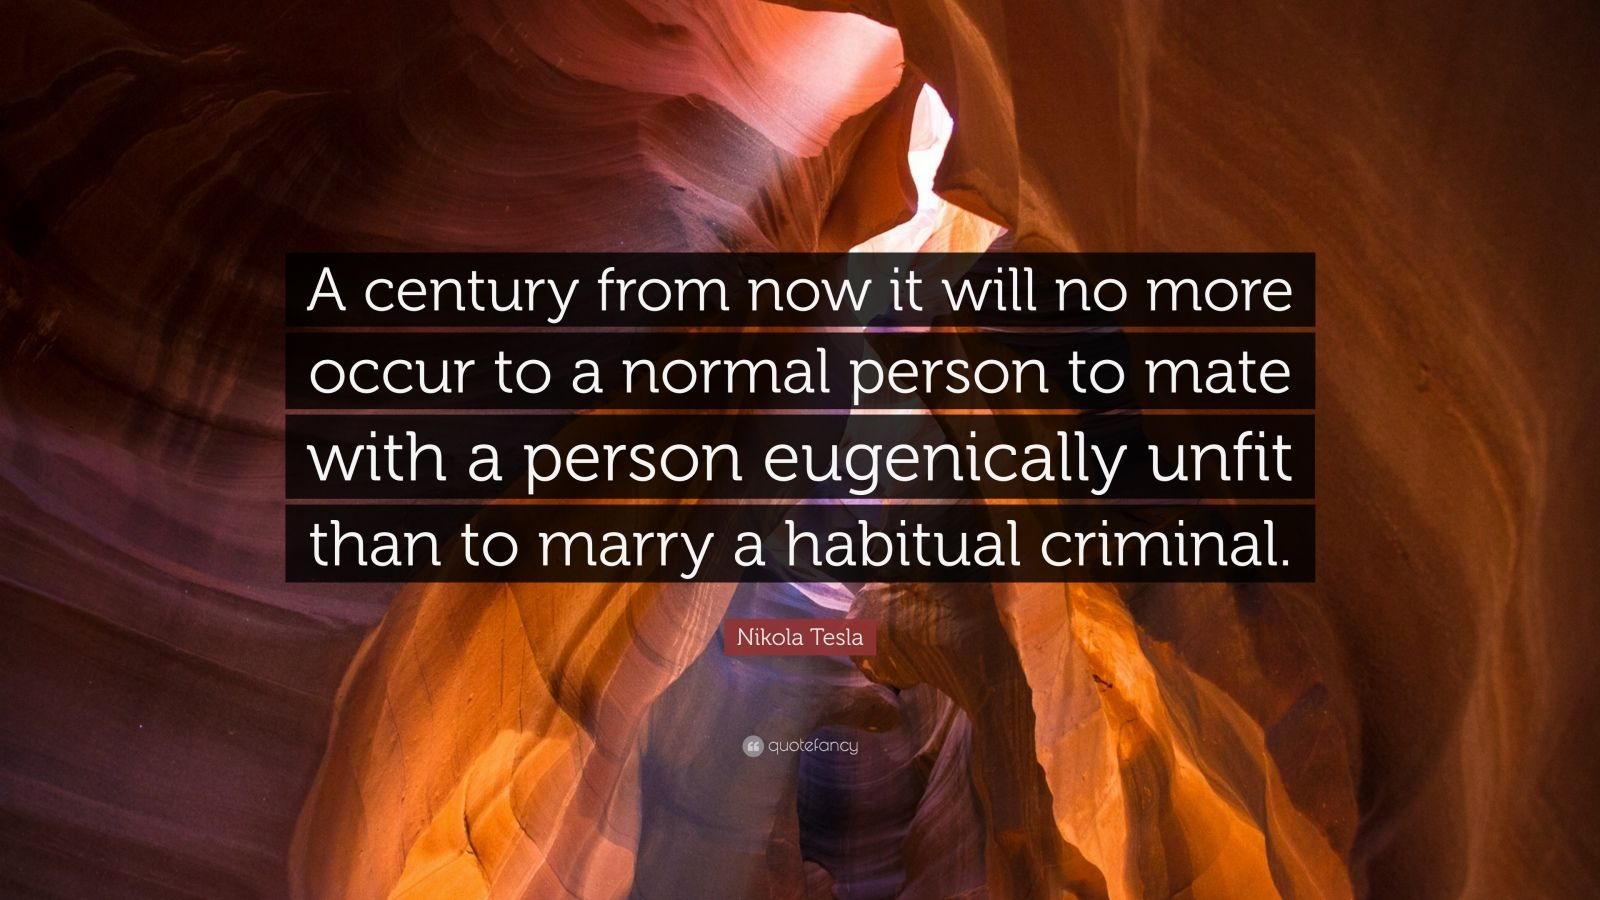 """Nikola Tesla Quote: """"A century from now it will no more occur to a normal person to mate with a person eugenically unfit than to marry a habitual criminal."""""""